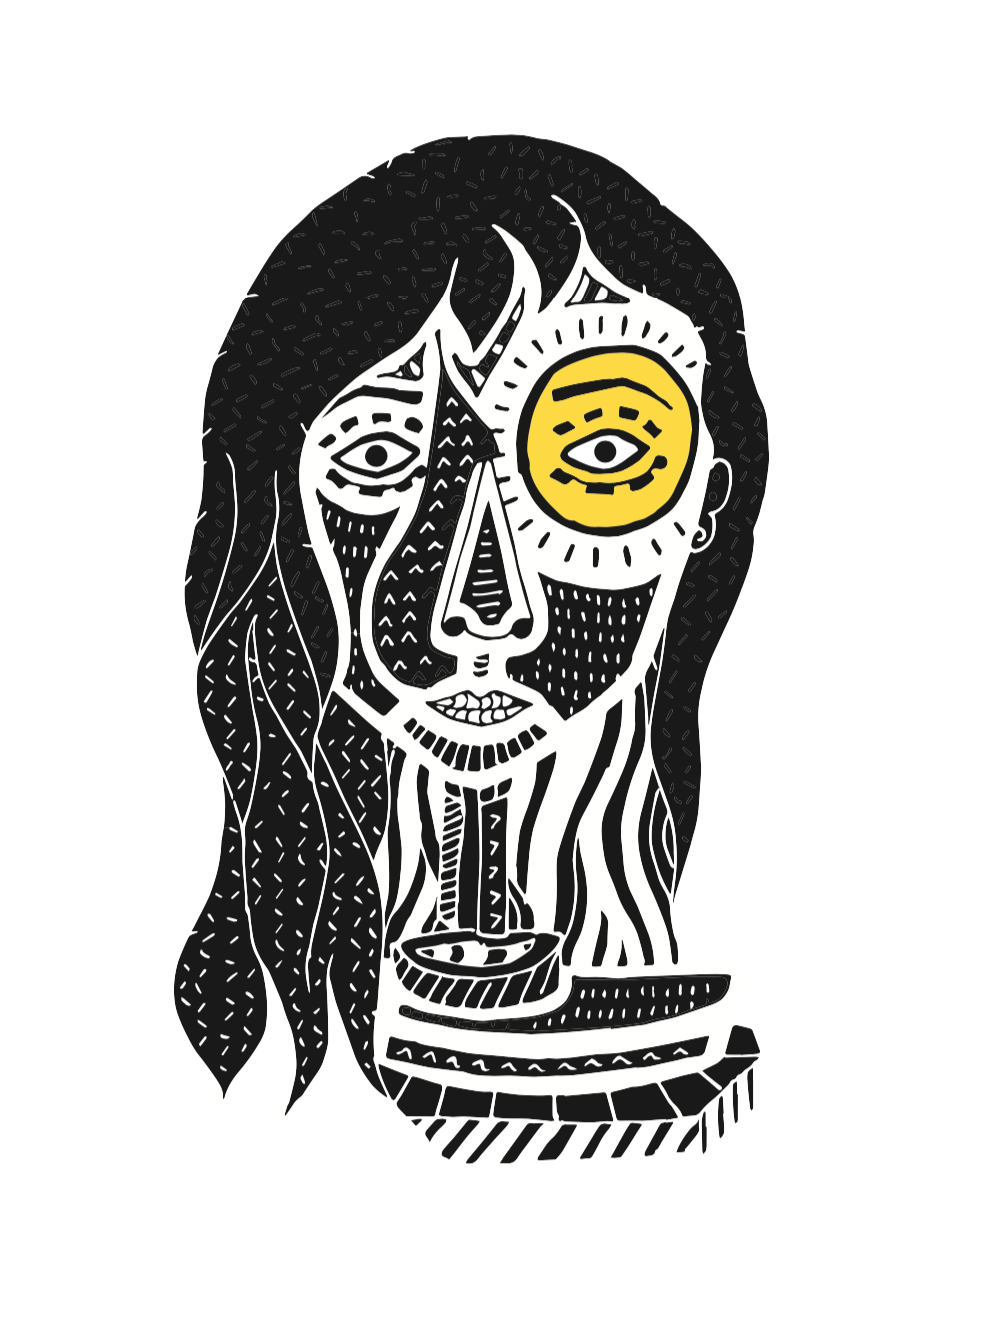 Image: Brigid by Louise Rowland for the Herstory Education Programme